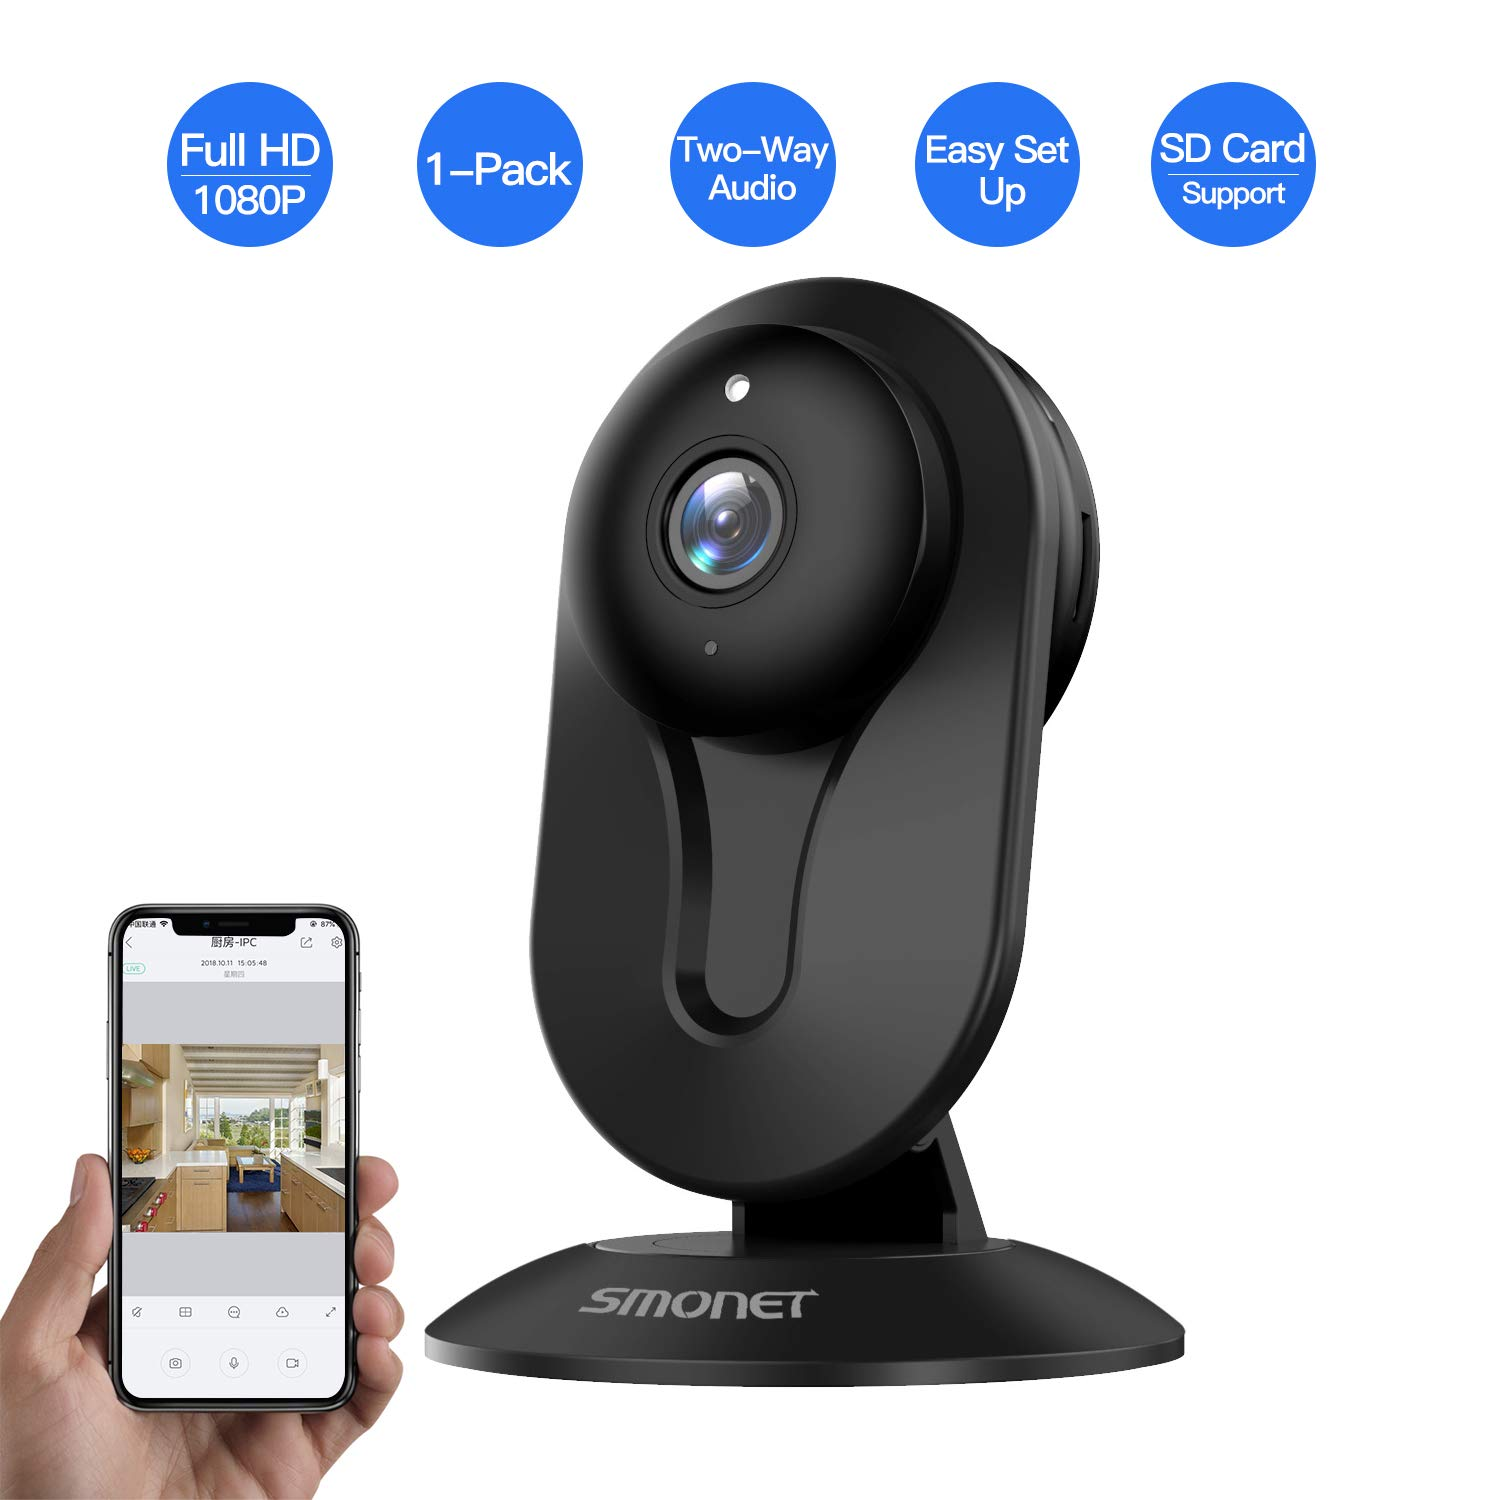 SMONET Indoor Security Camera, Security IP Camera Wireless with Two-Way Audio, Night Vision, Full HD 1080P 2.0 Mega-Pixel Indoor Surveillance Camera for Elder Baby Nanny Pet Monitor Black